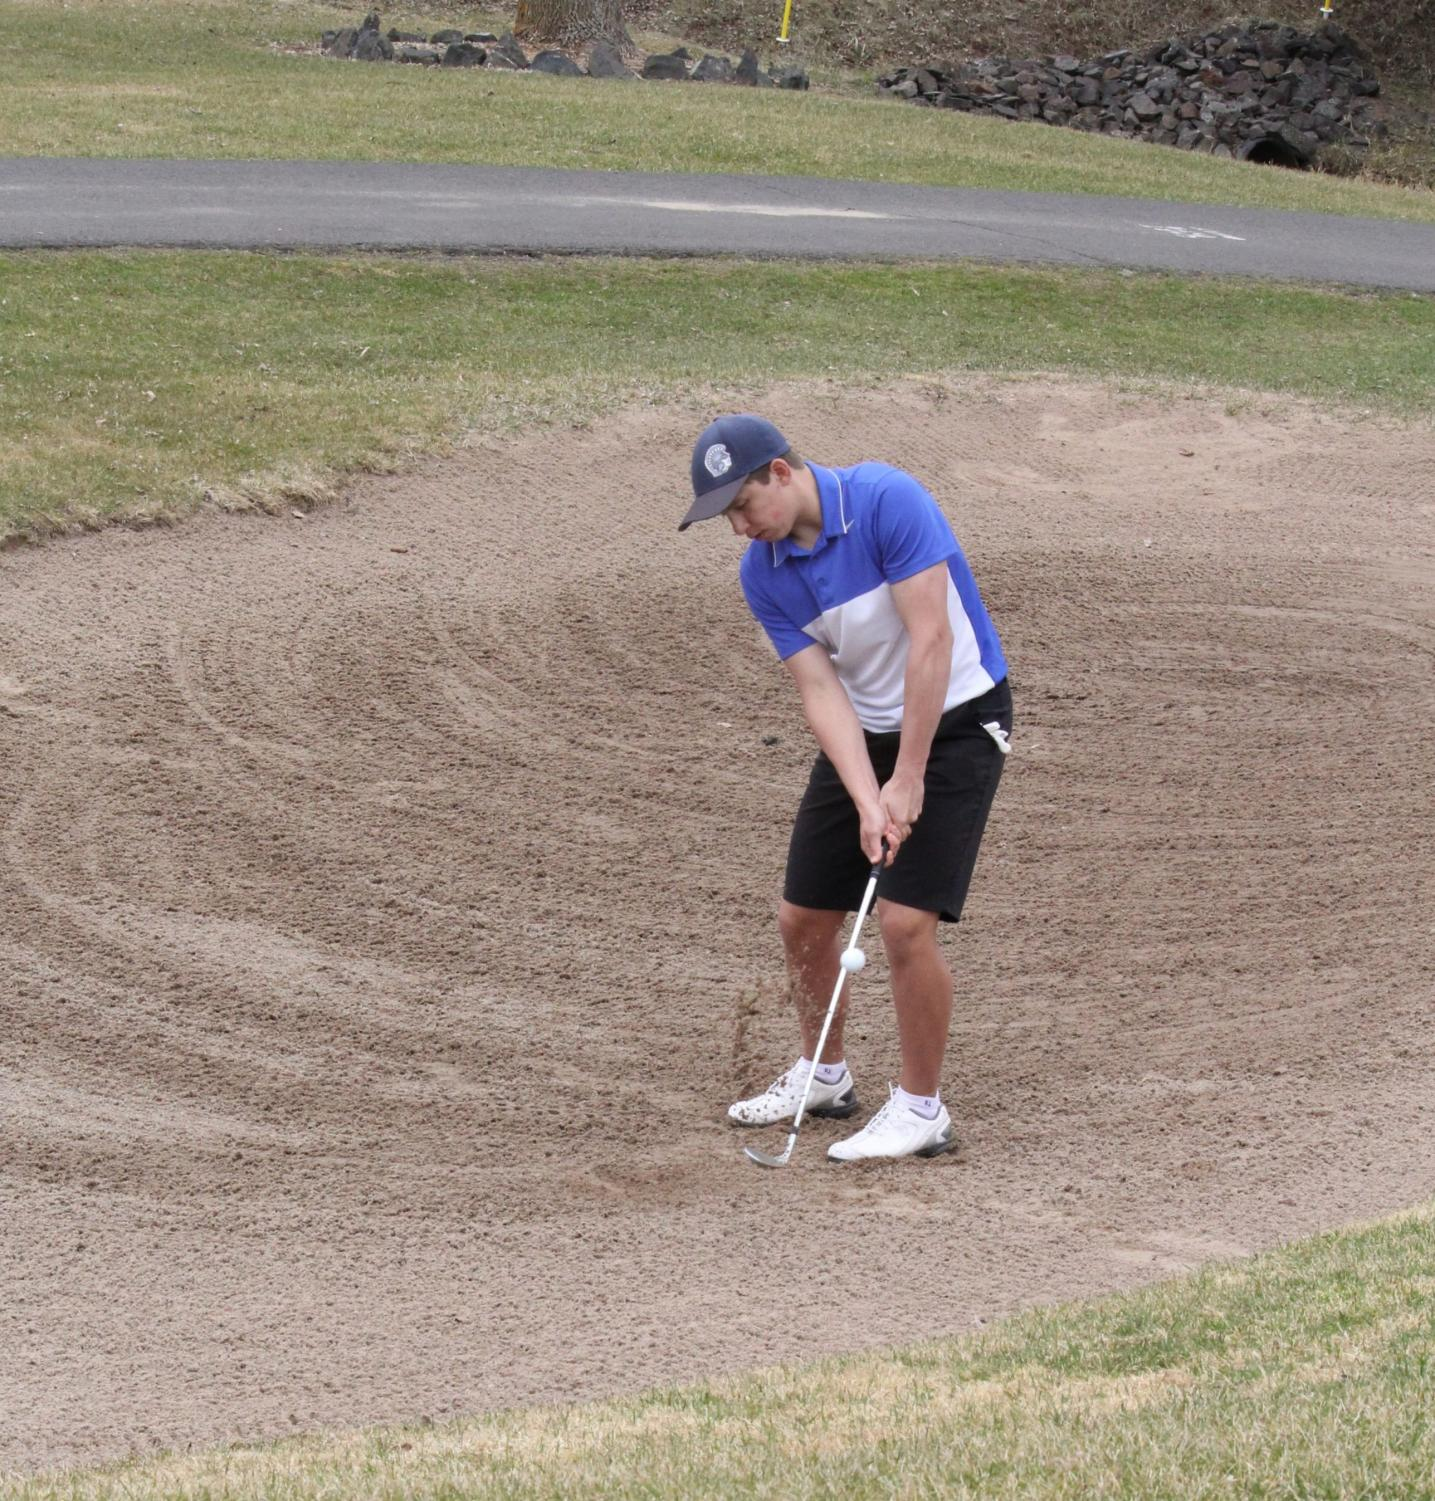 : Sophomore TJ Sitek chips out of the sand on the 10th hole of the south course at Nemadji Golf Course on Wed. May 2.